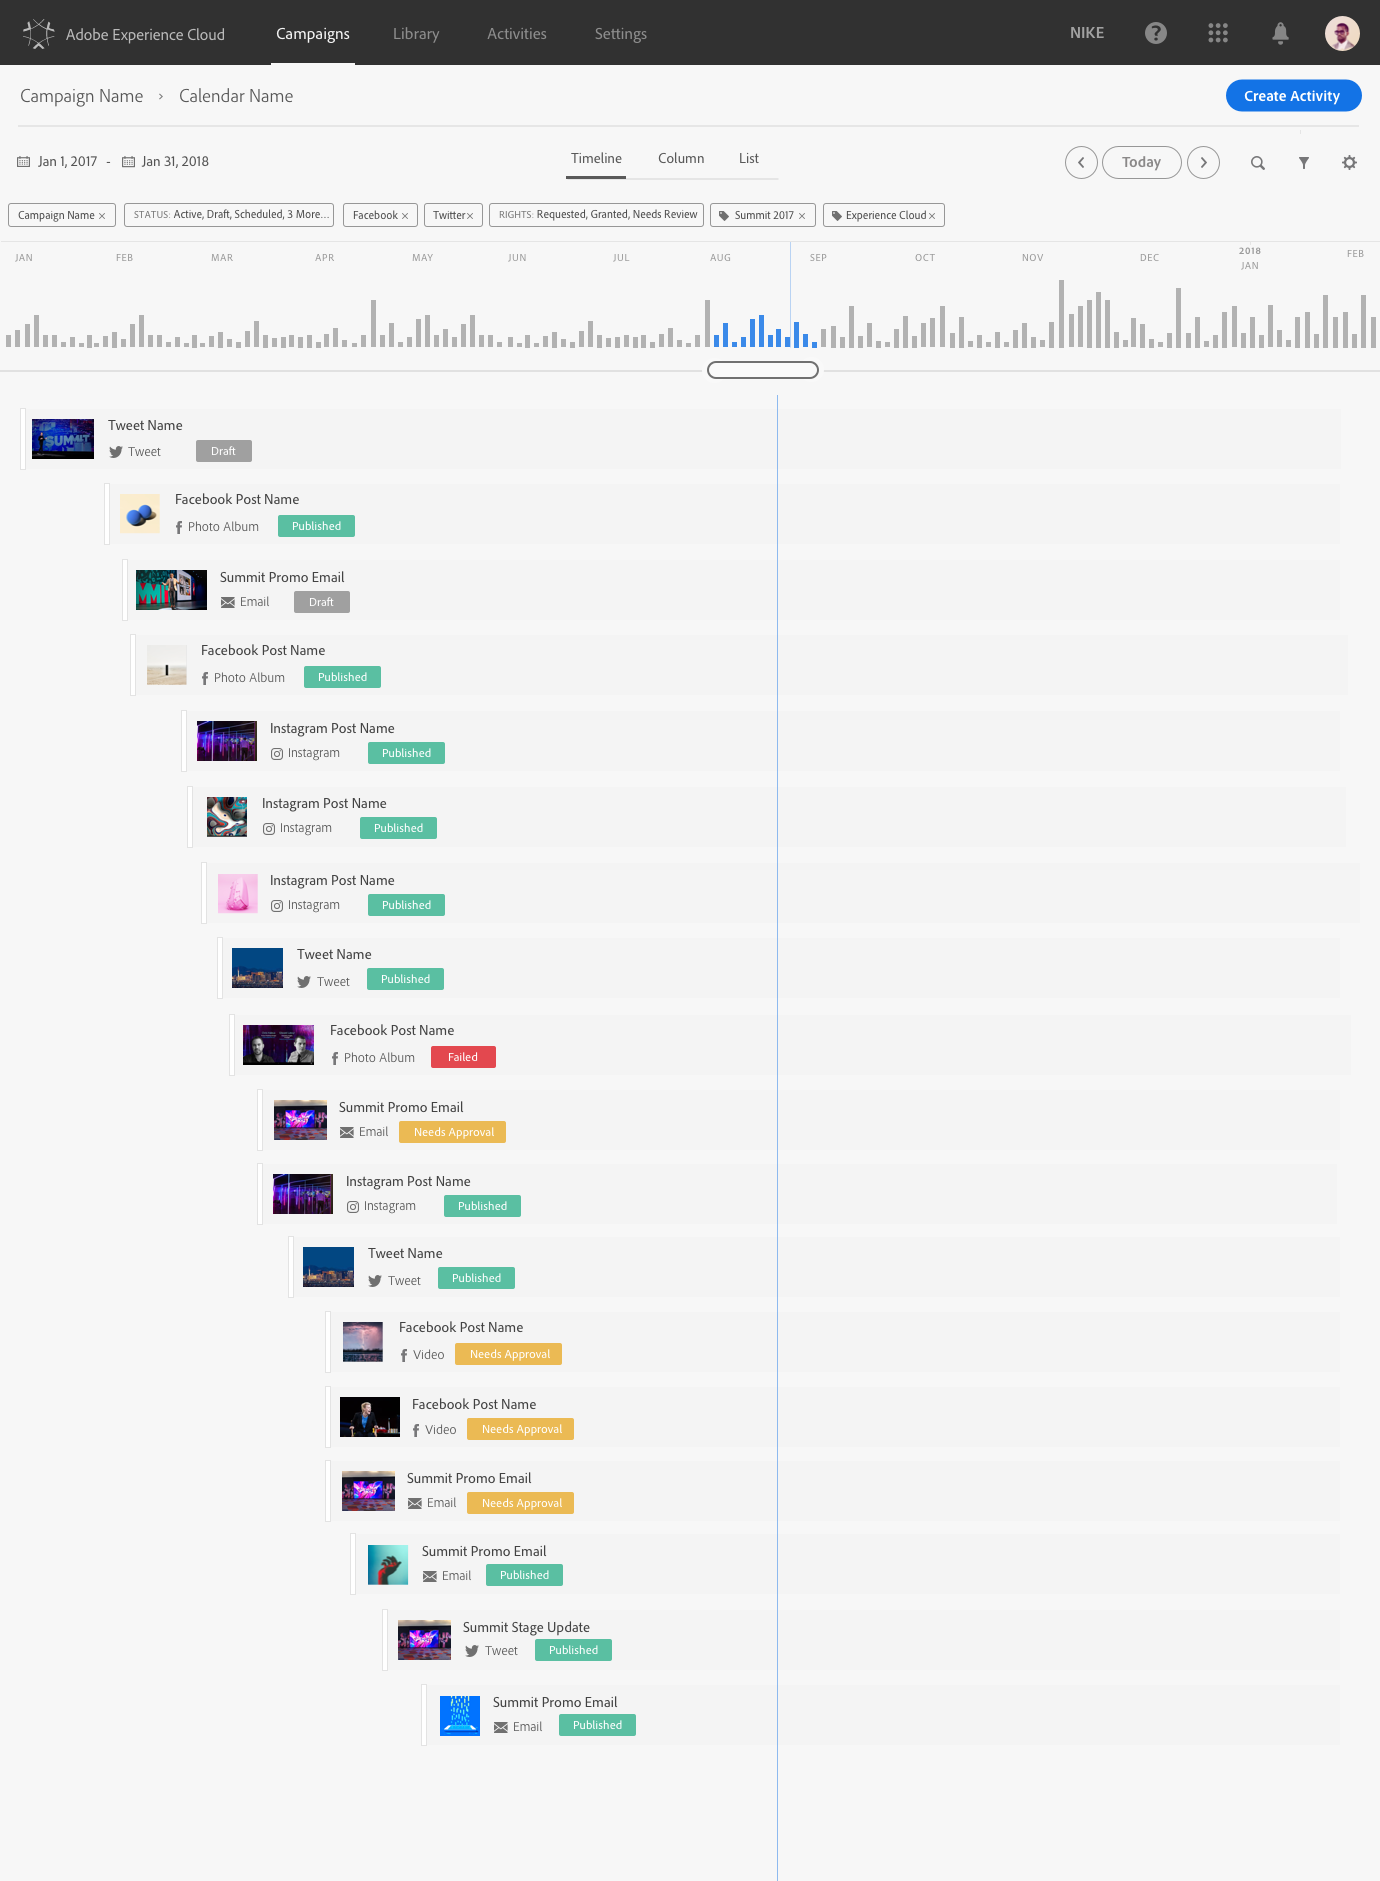 This shows a timeline of all activities for a company. This view is showing only social activities which do not have a duration and instead go live at a point in time. This type of view is best suited for viewing multiple campaigns.